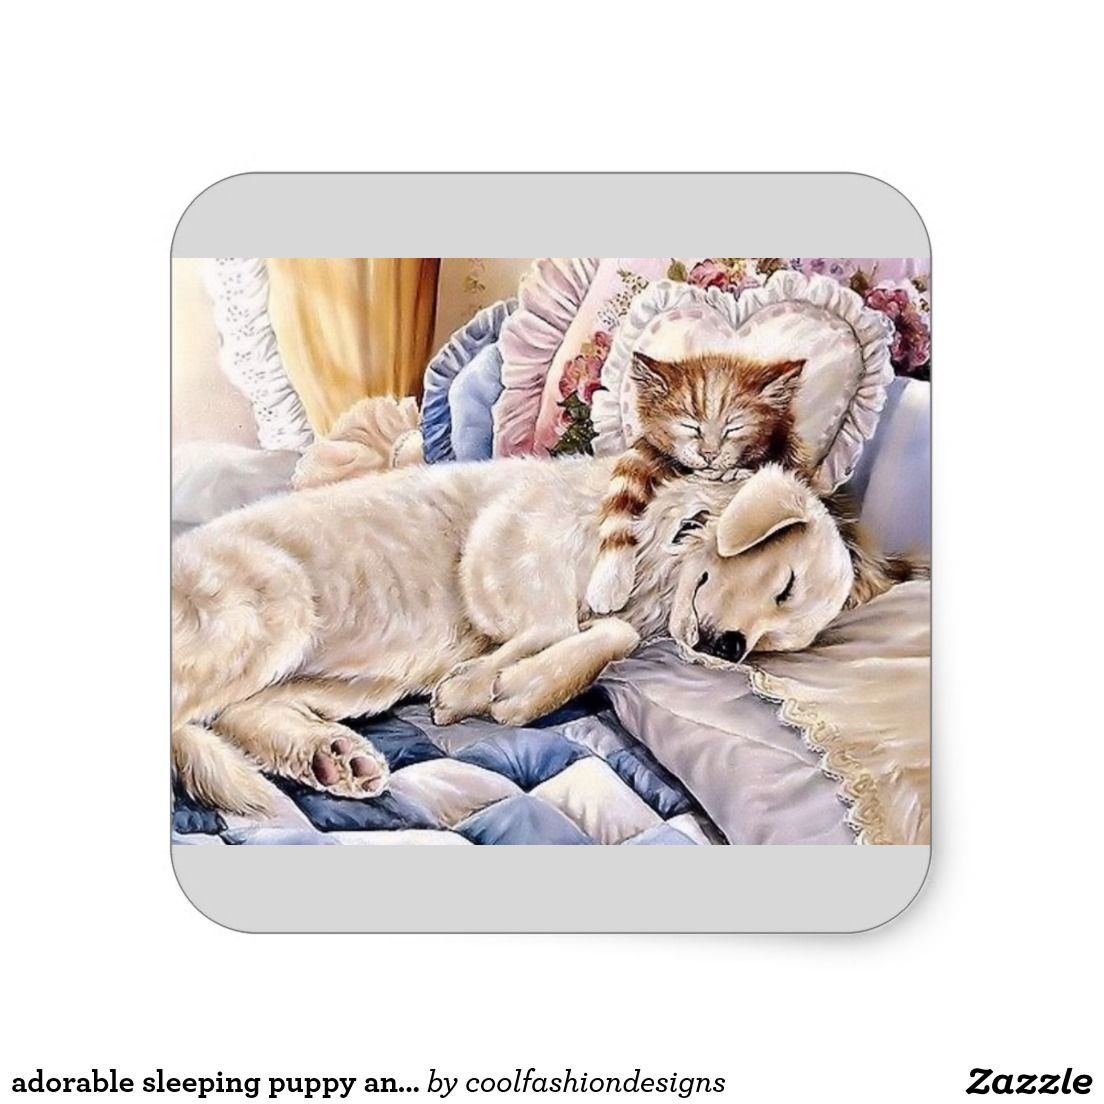 adorable sleeping puppy and kitten square sticker